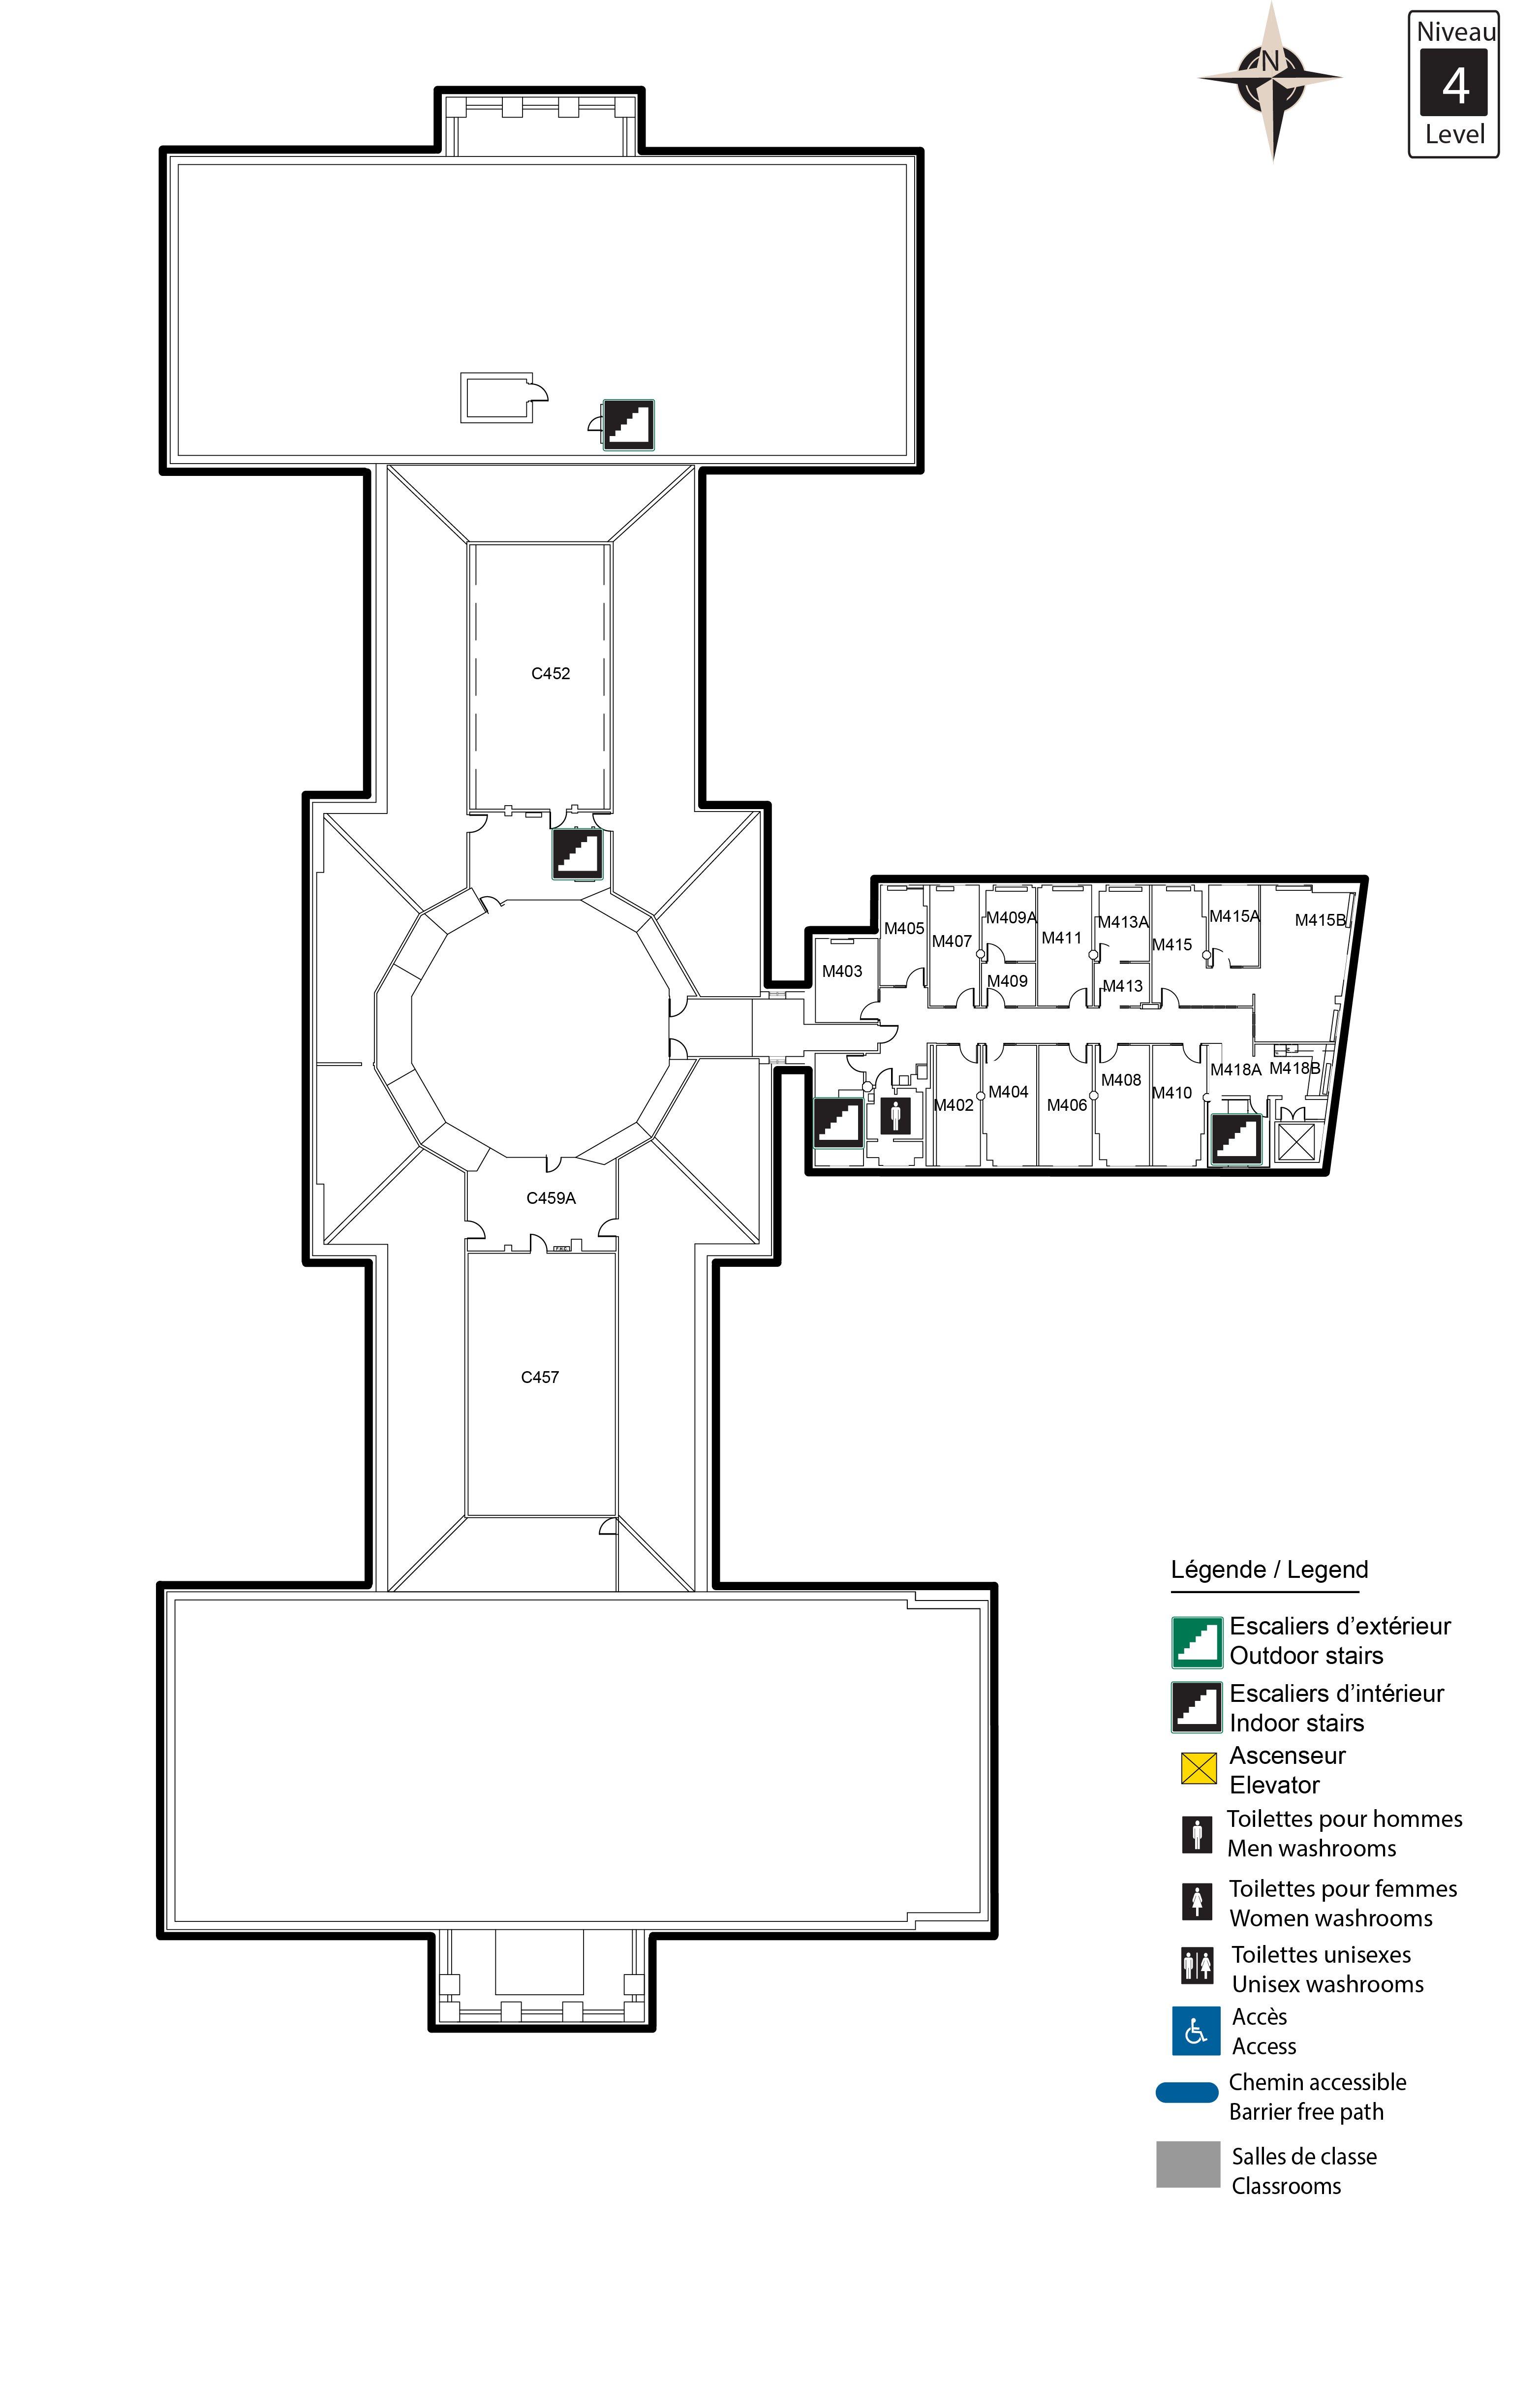 Accessible map - Tabaret 4